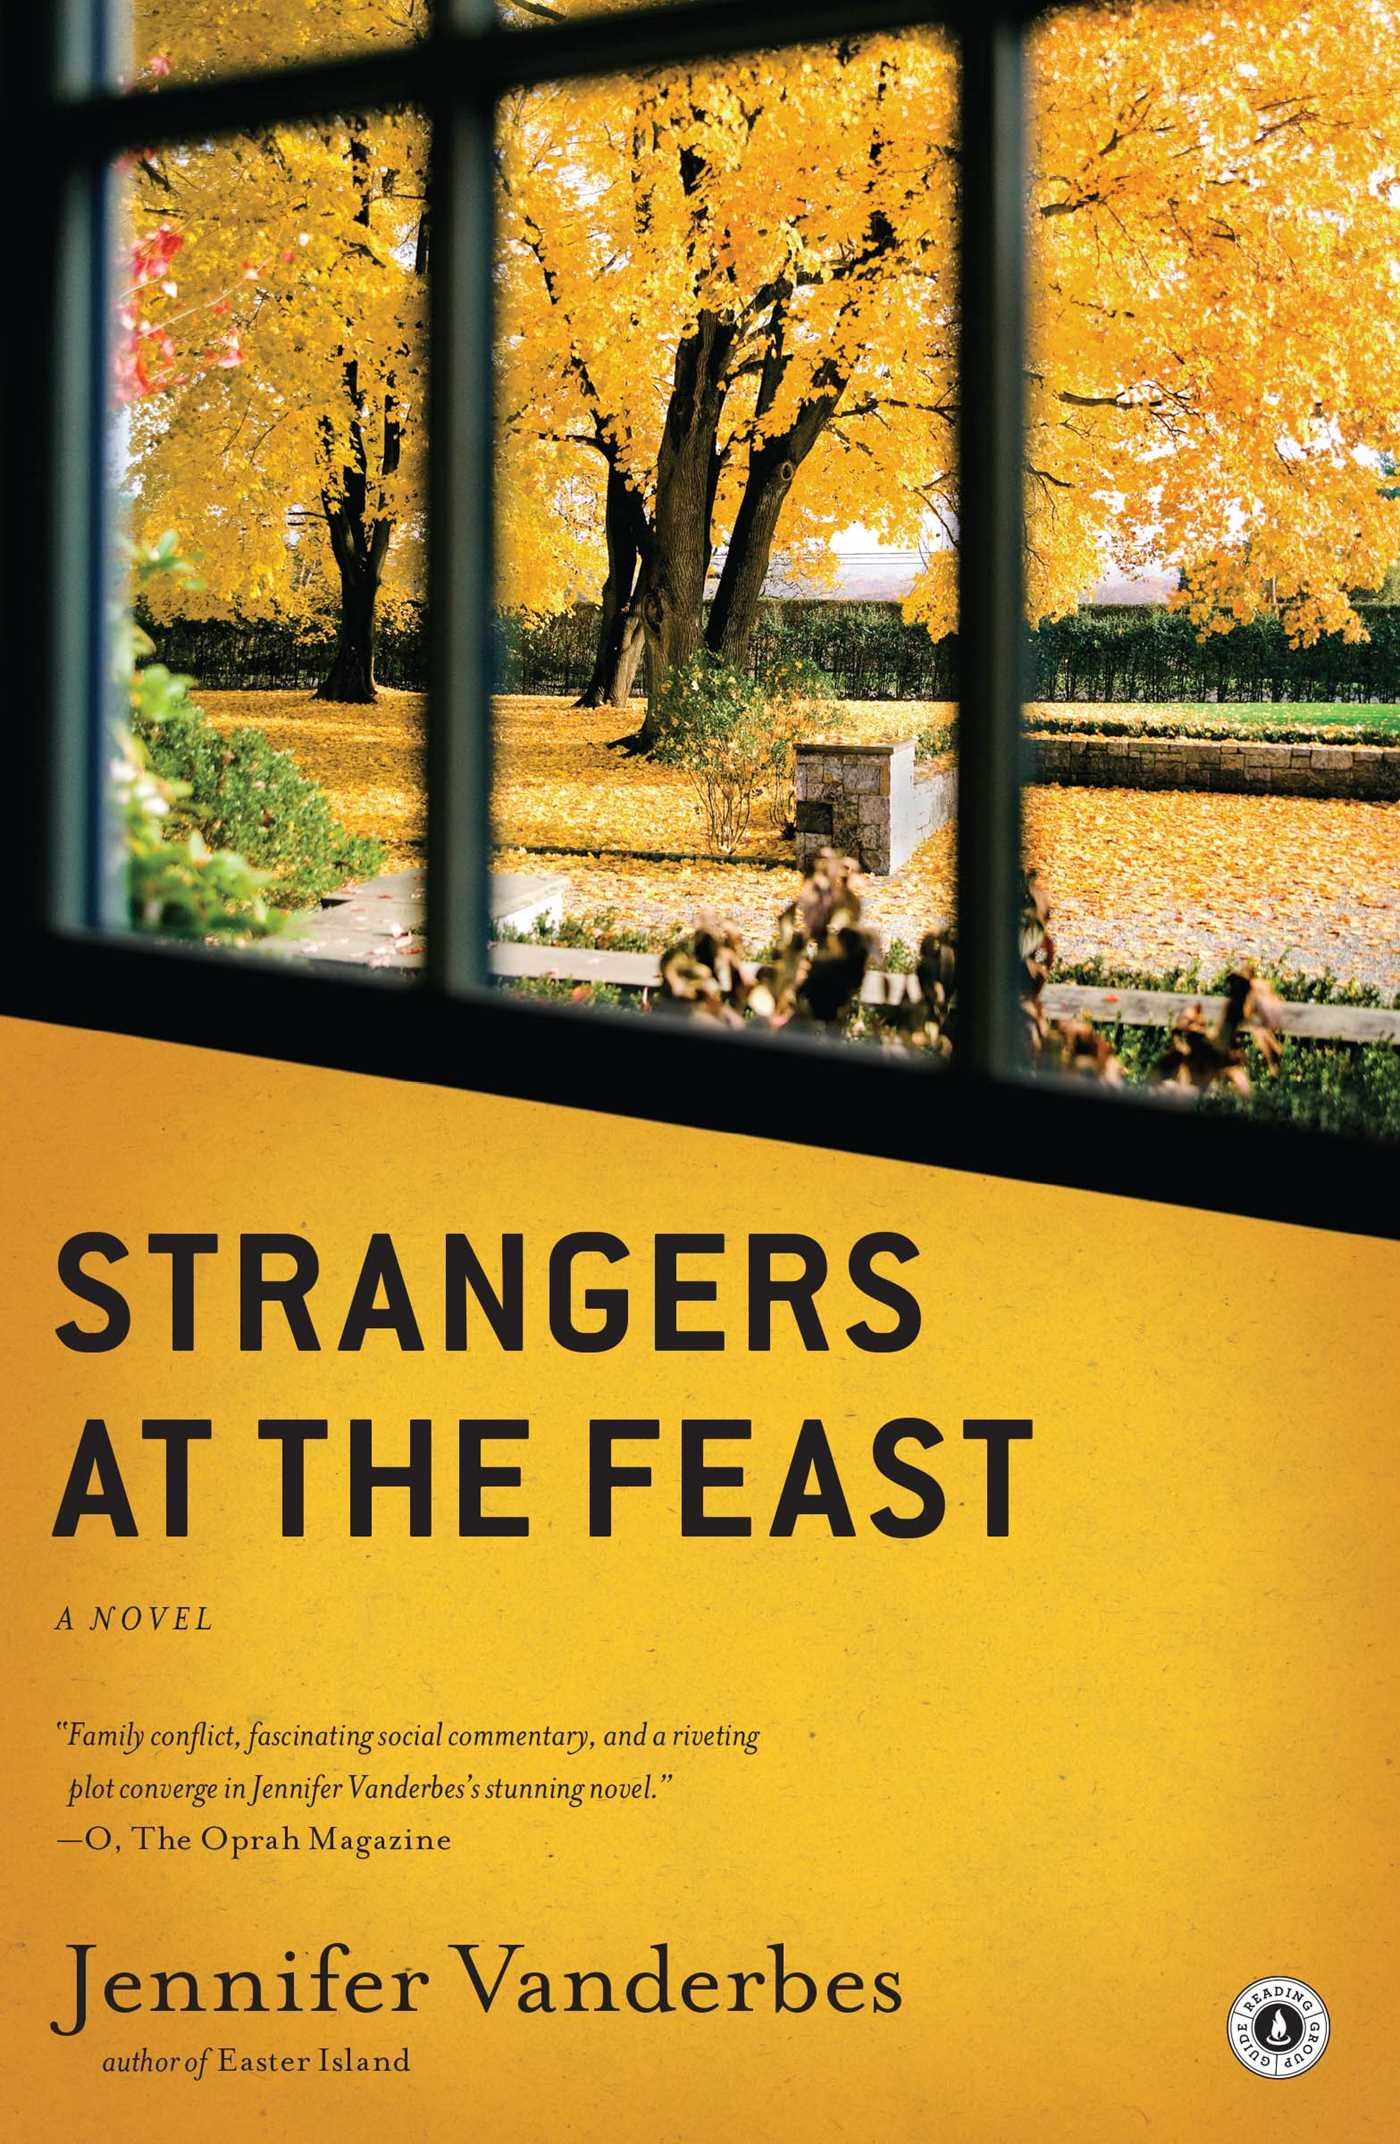 Strangers-at-the-feast-9781439166994_hr